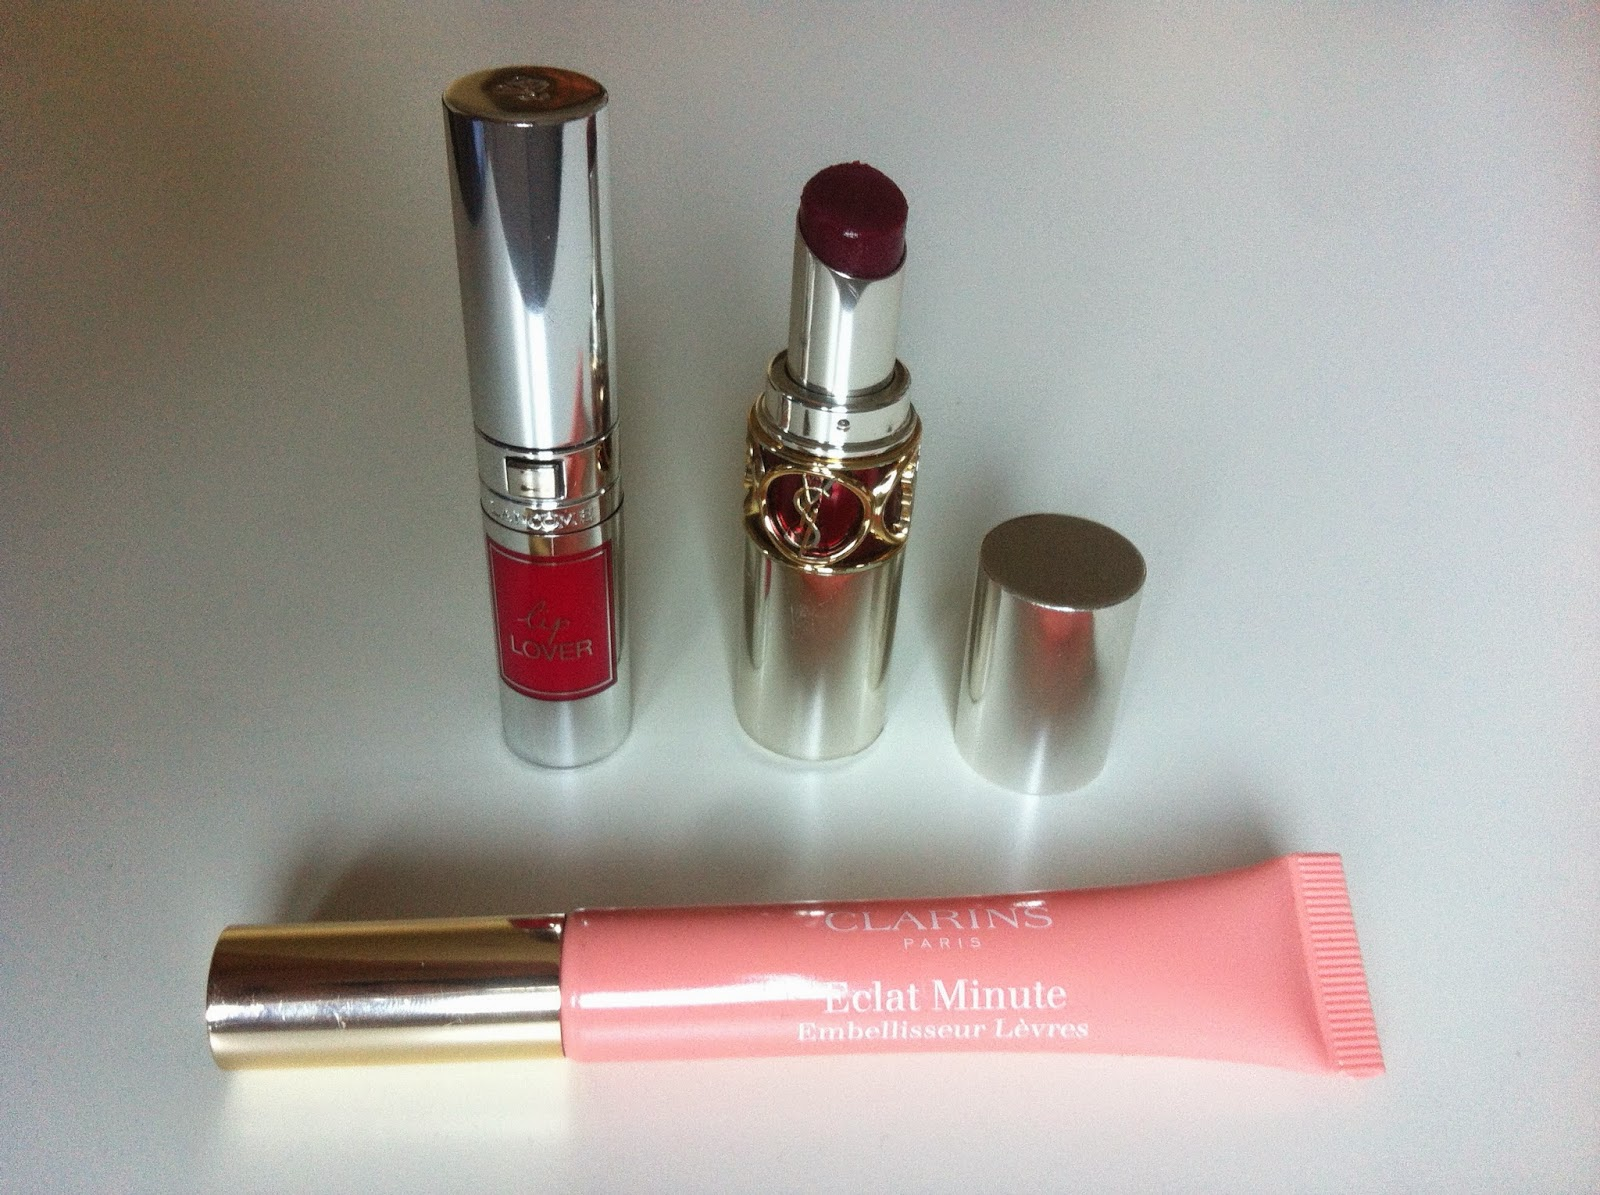 tag the lip product addict, lancome lip lover 355, ysl volupté sheer candy 5, clarins eclat minute embelliseur lèvres 02